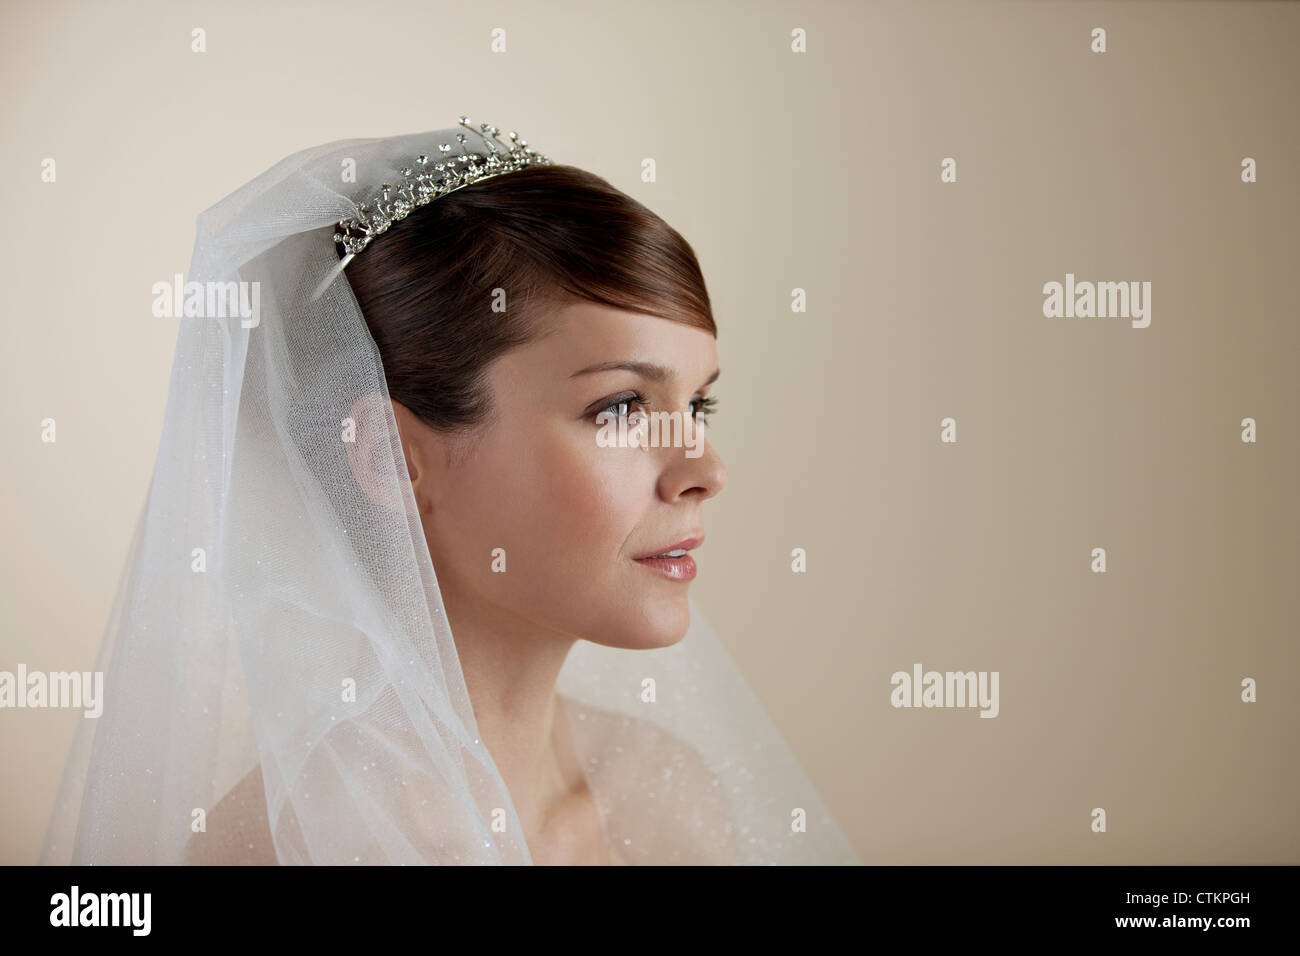 Radiant with joy immagini radiant with joy fotos stock for Sposa che corre